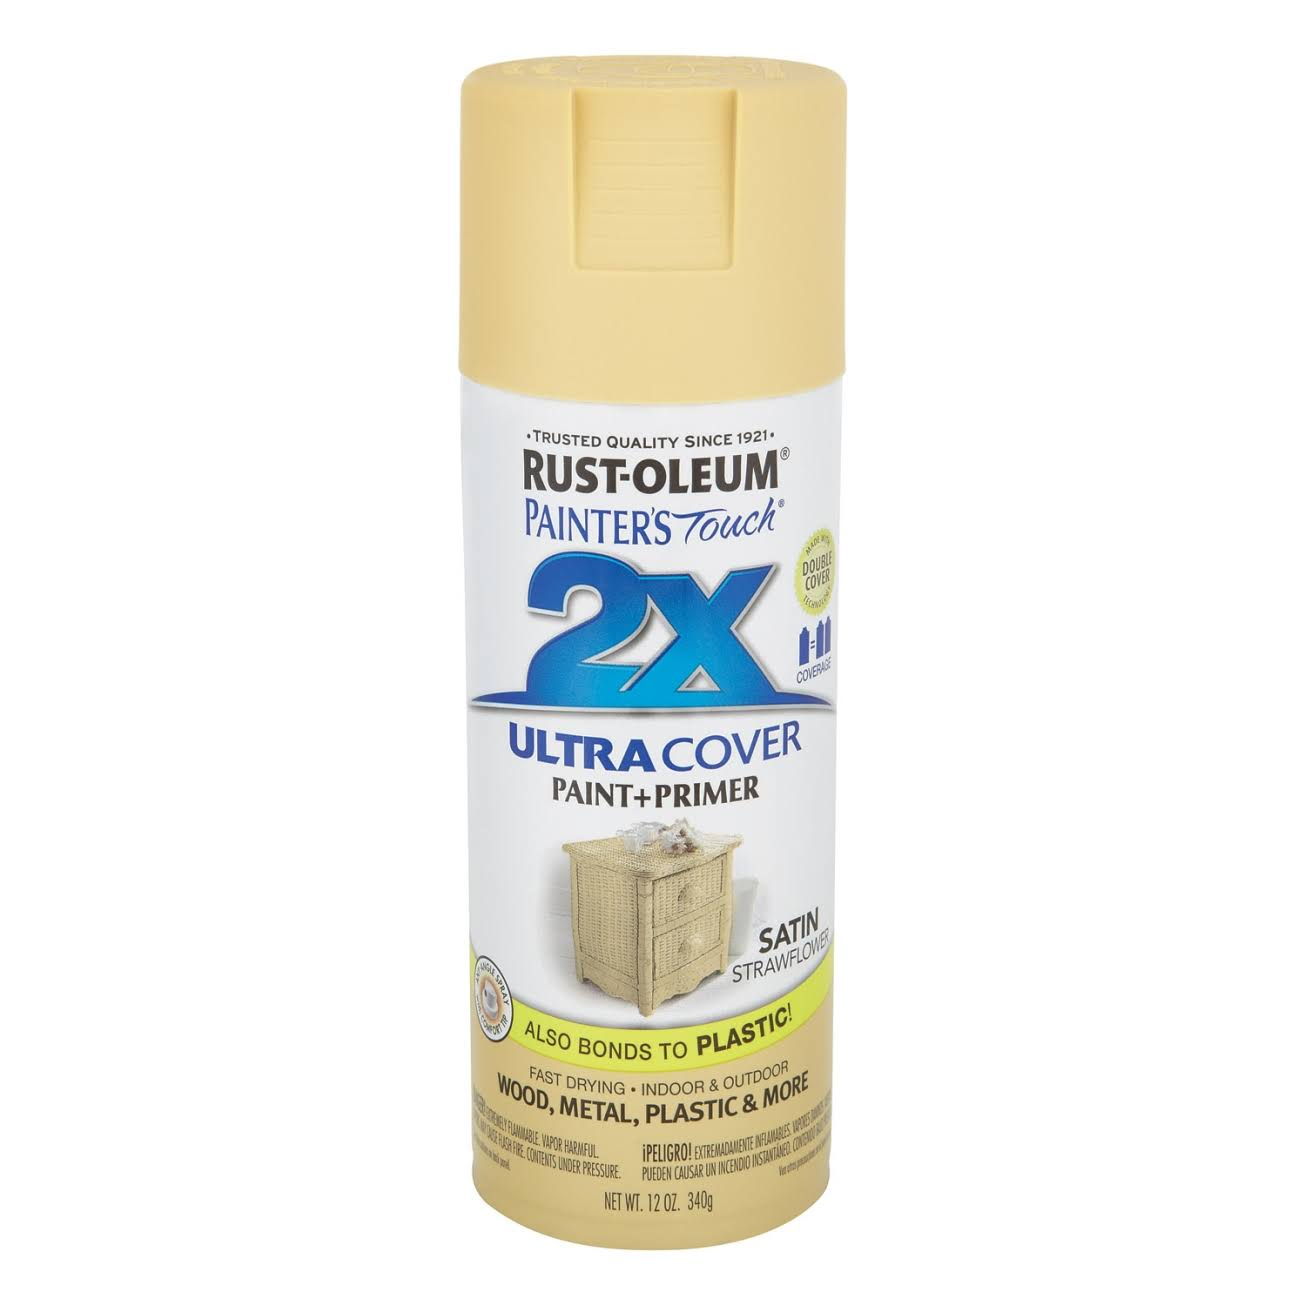 Rust Oleum 249065 Painter's Touch Multi Purpose Spray Paint - 12oz